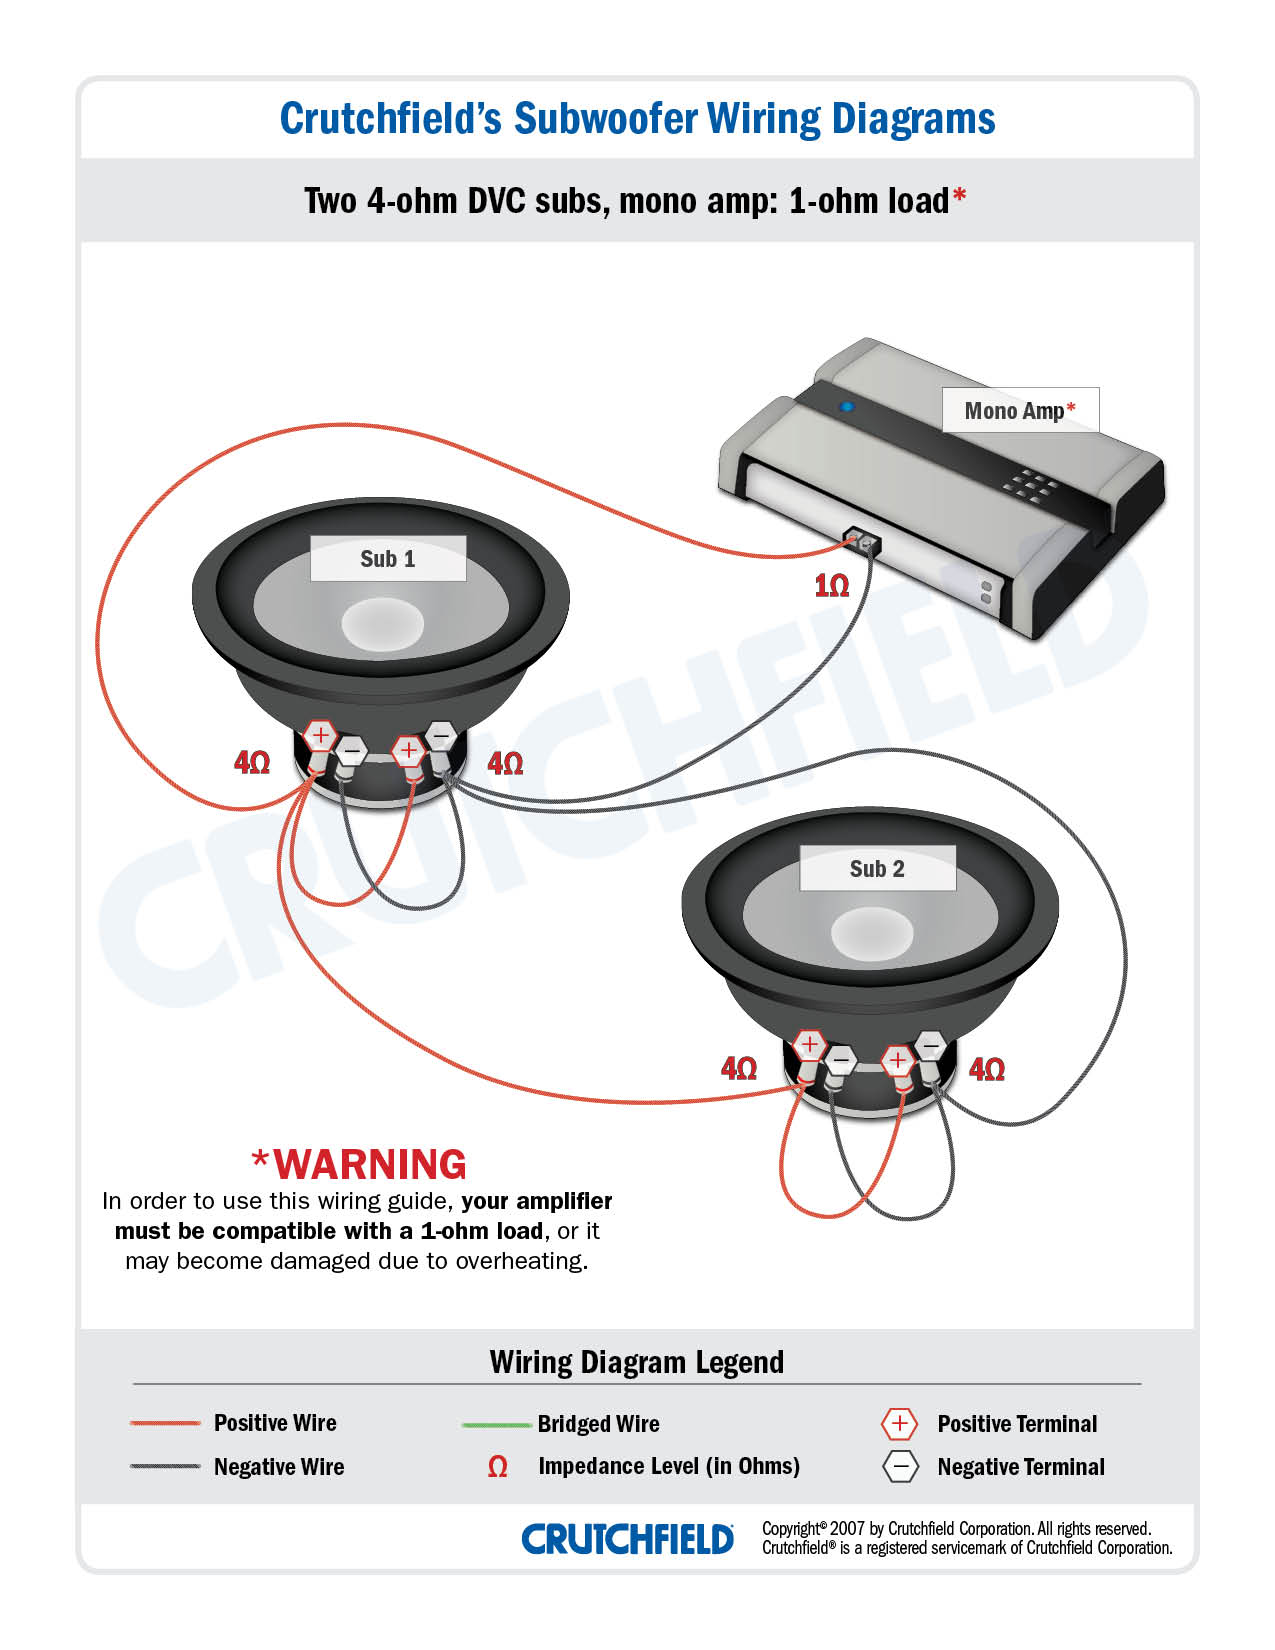 Magnificent Subwoofer Wiring Diagrams How To Wire Your Subs Wiring 101 Akebretraxxcnl